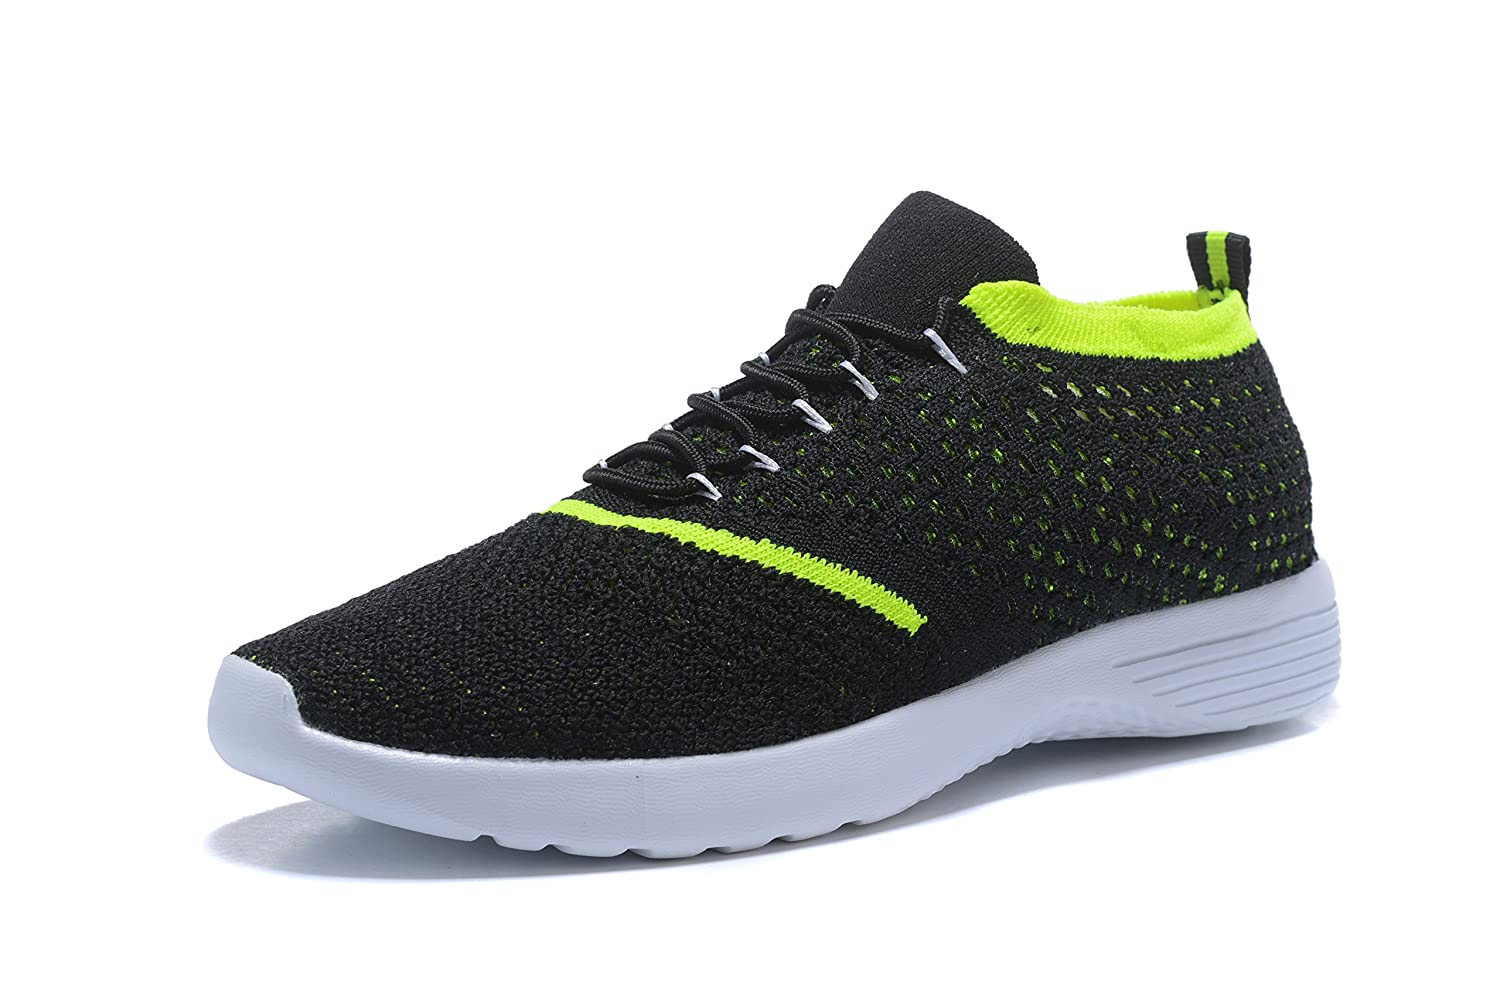 Kenswalk Men's Trainers Gym Walking Athletic Lightweight Sports Knit Running Shoes